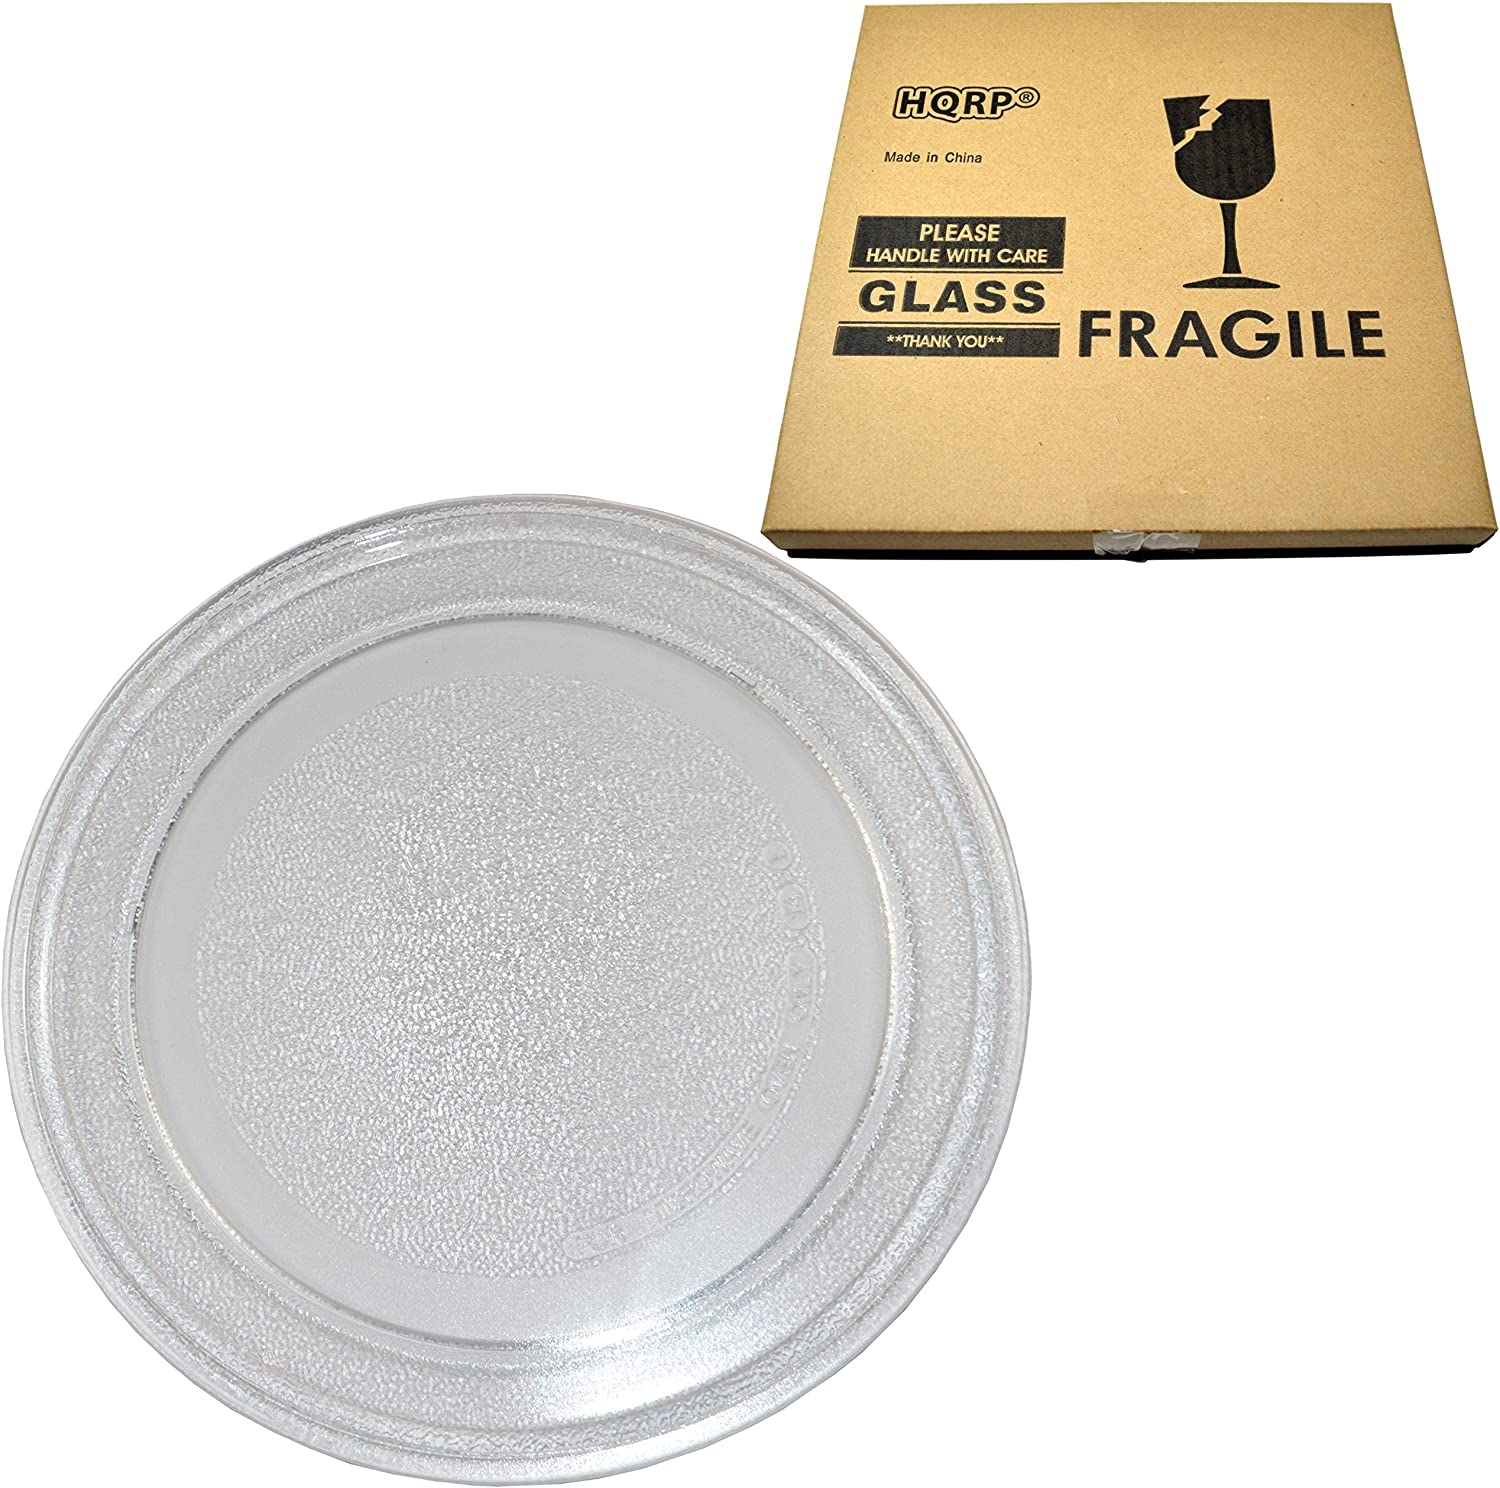 HQRP 9-5/8 inch Glass Turntable Tray compatible with Oster OGG3701 3390W1A035 OM0701 OMO701 OM0701A8B OM0701N8E OMO701N8E OGT6701 OGYU701 0GYU701M OGYW0701 Microwave Oven Cooking Plate 245mm